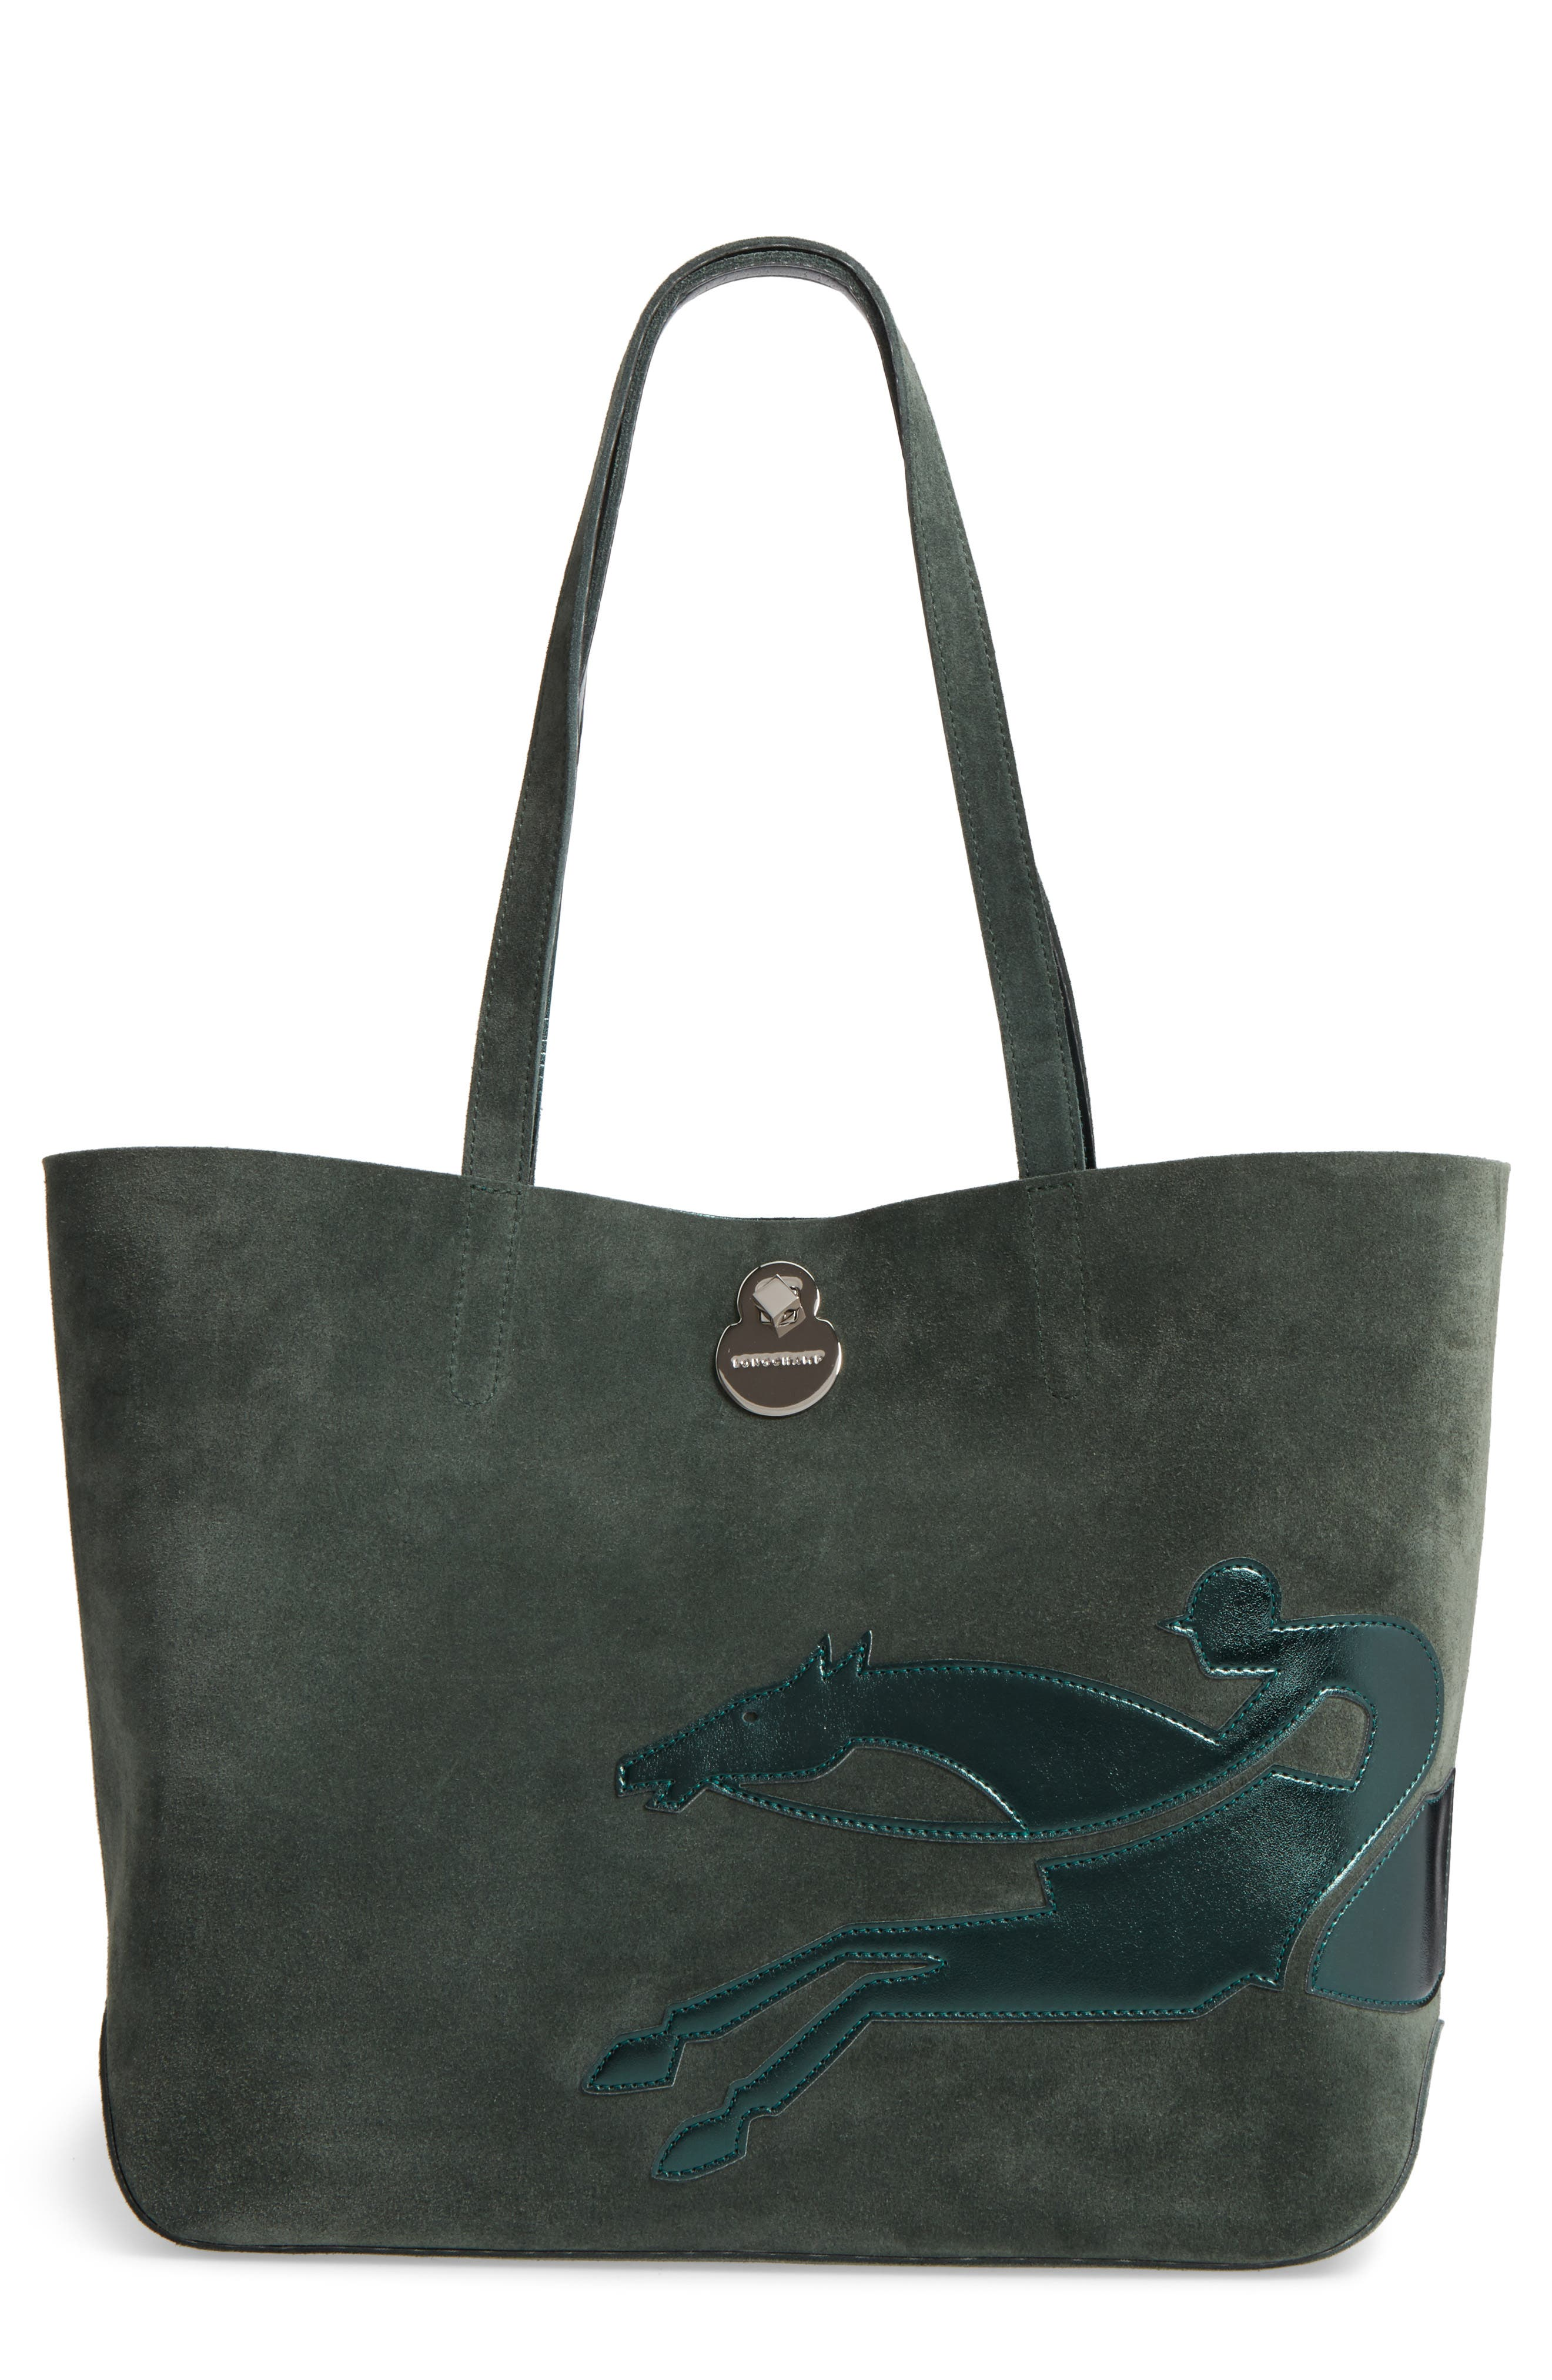 Alternate Image 1 Selected - Longchamp Shop It Suede Tote